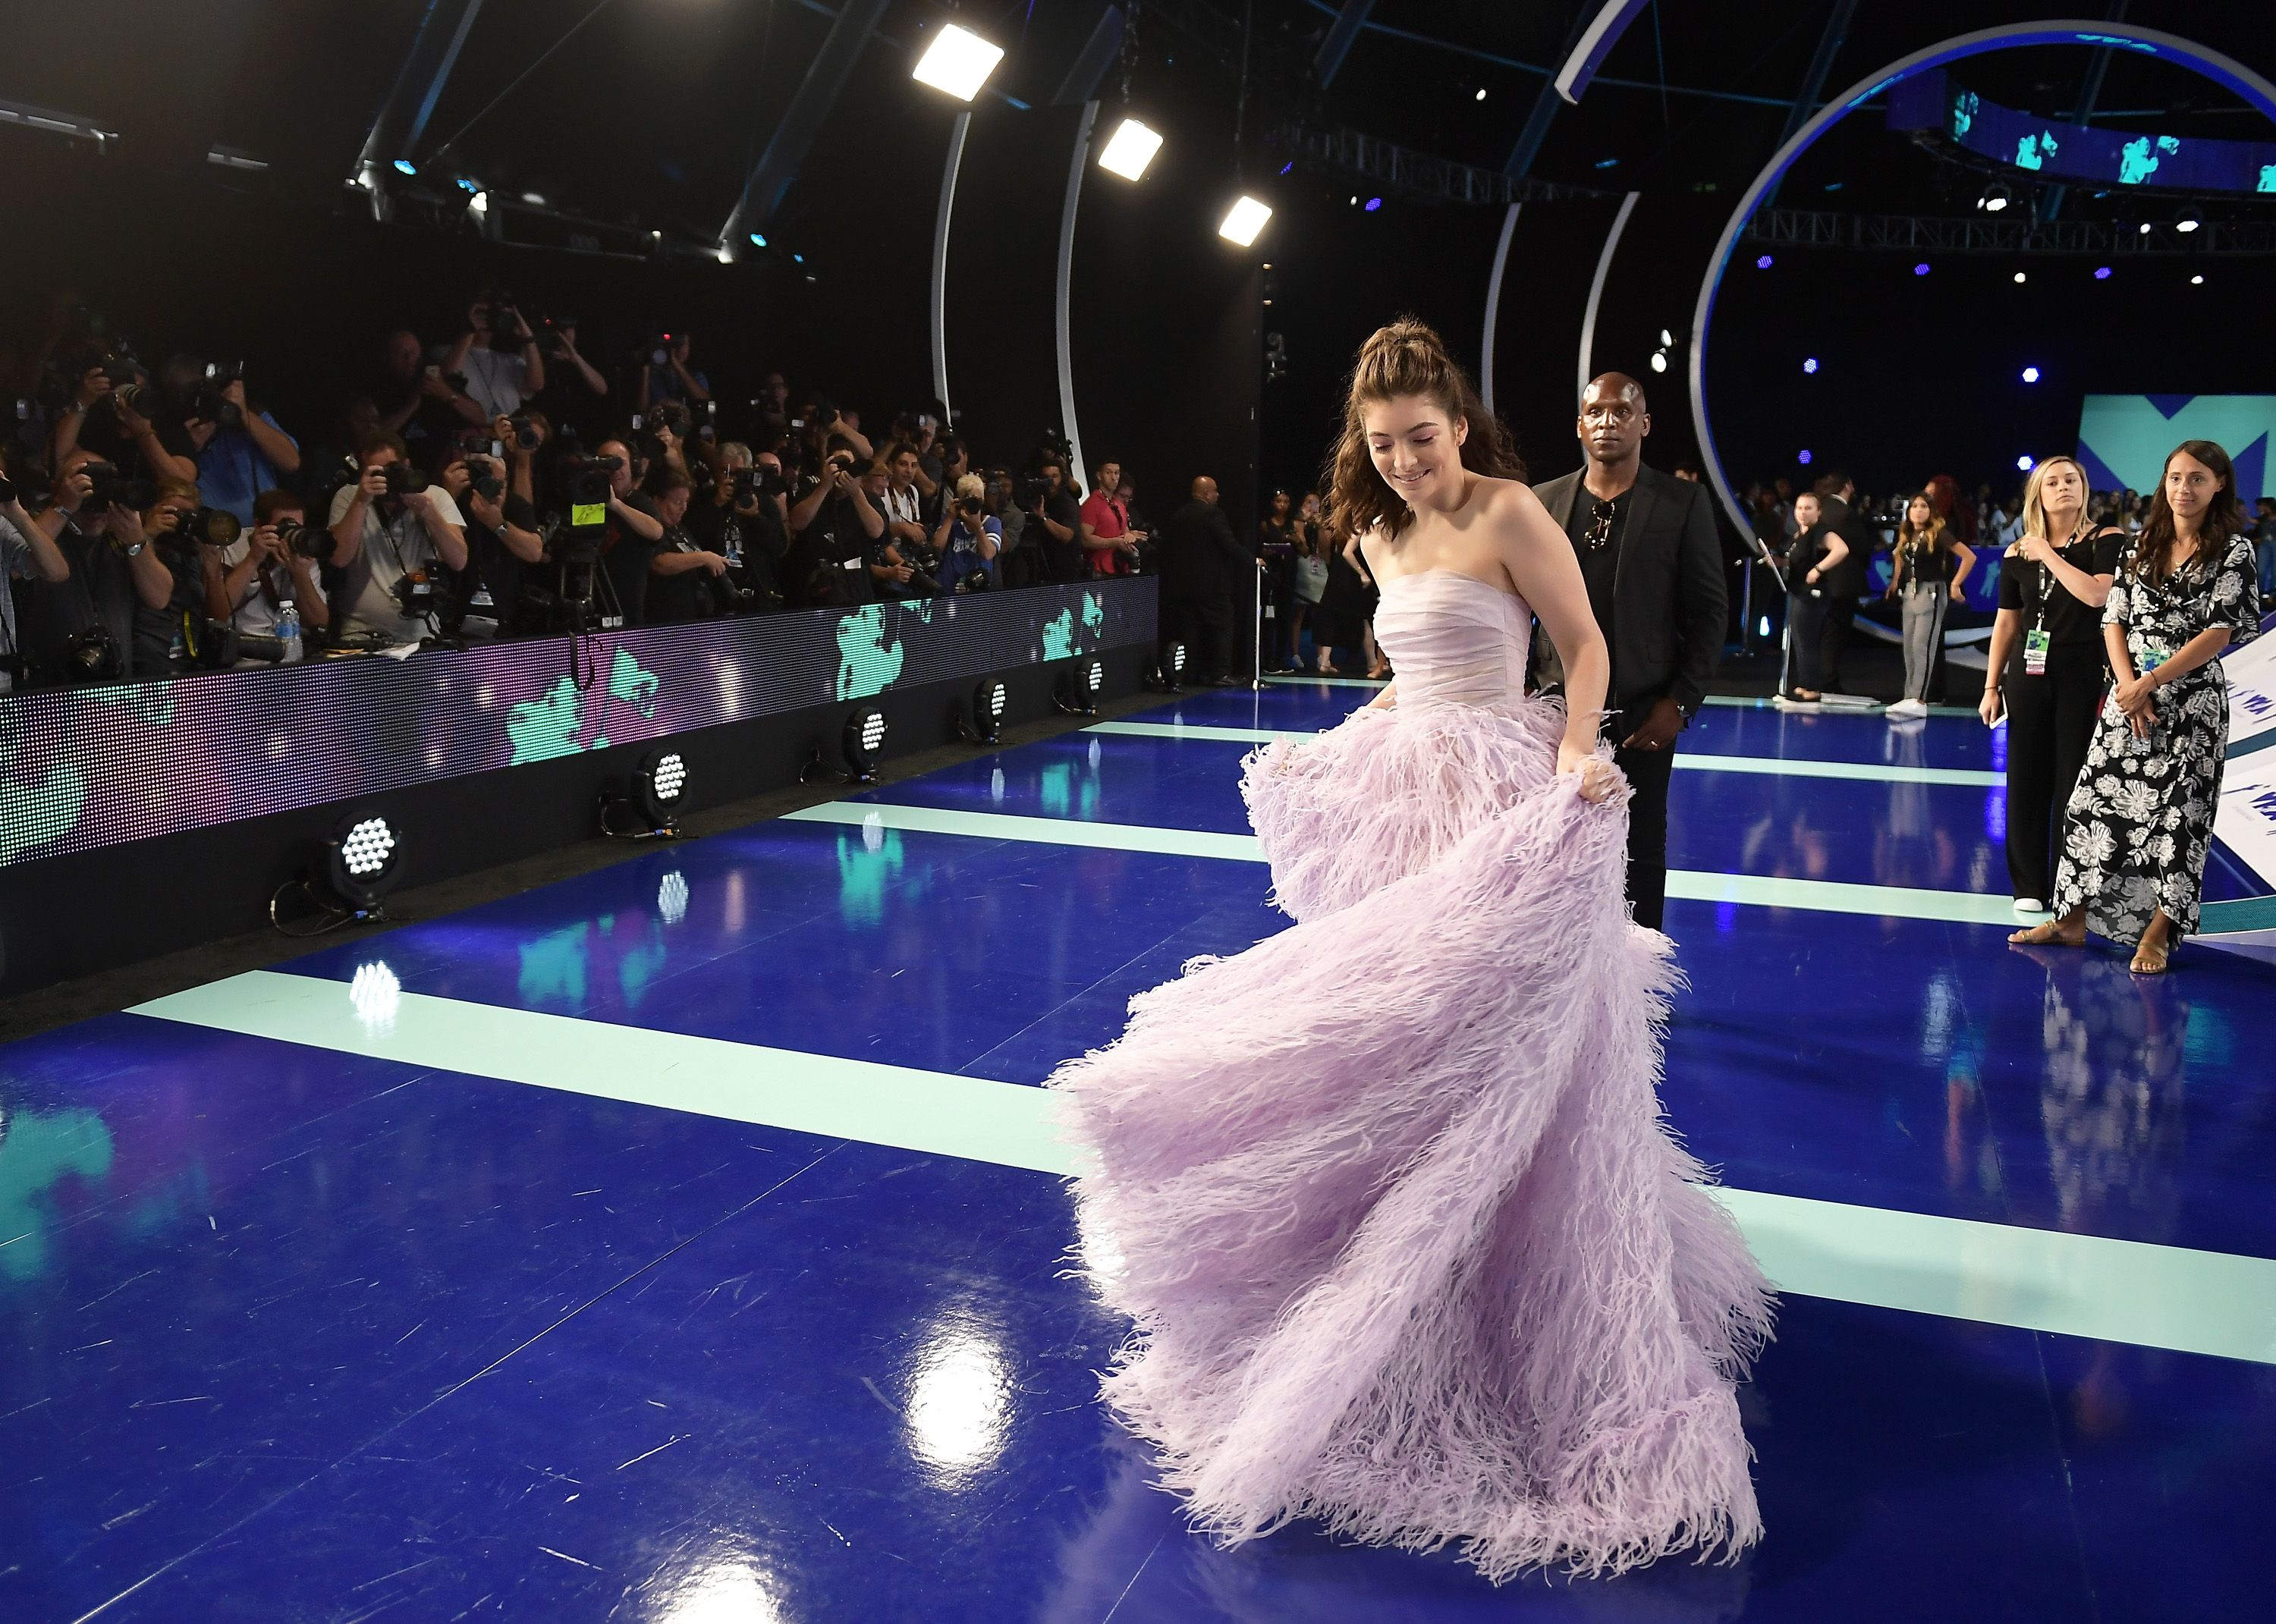 New Zealand-born artist Lorde gives voiceless performance at the VMAs